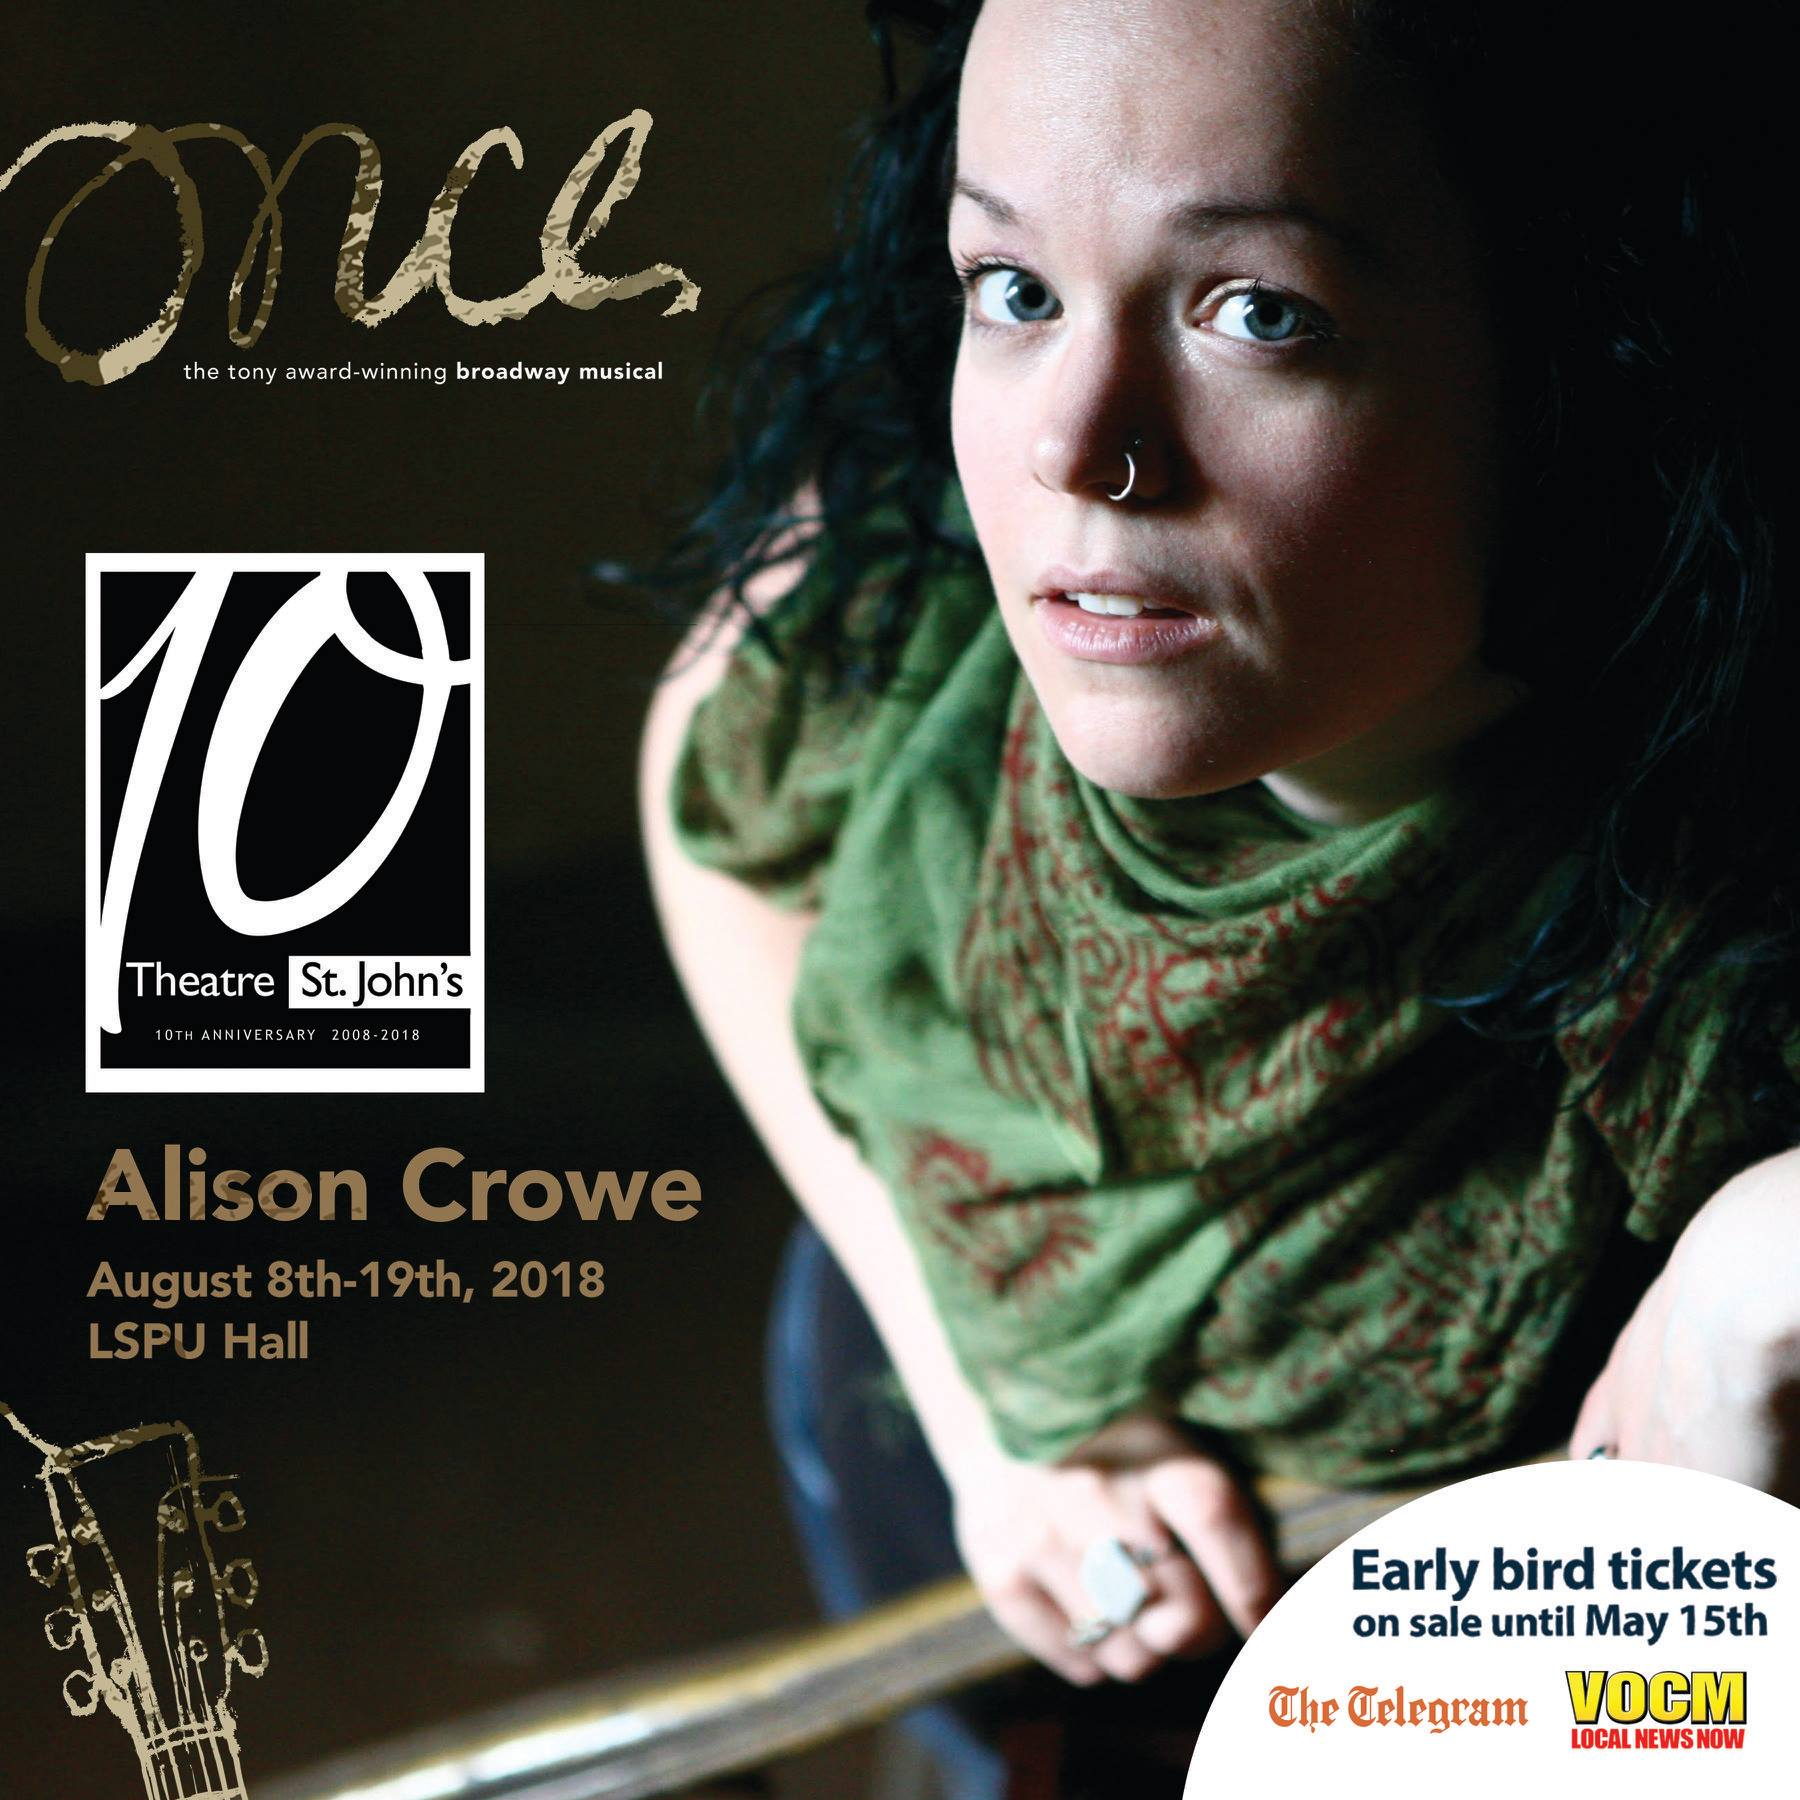 Once - Theatre St. John's - Allison Crowe